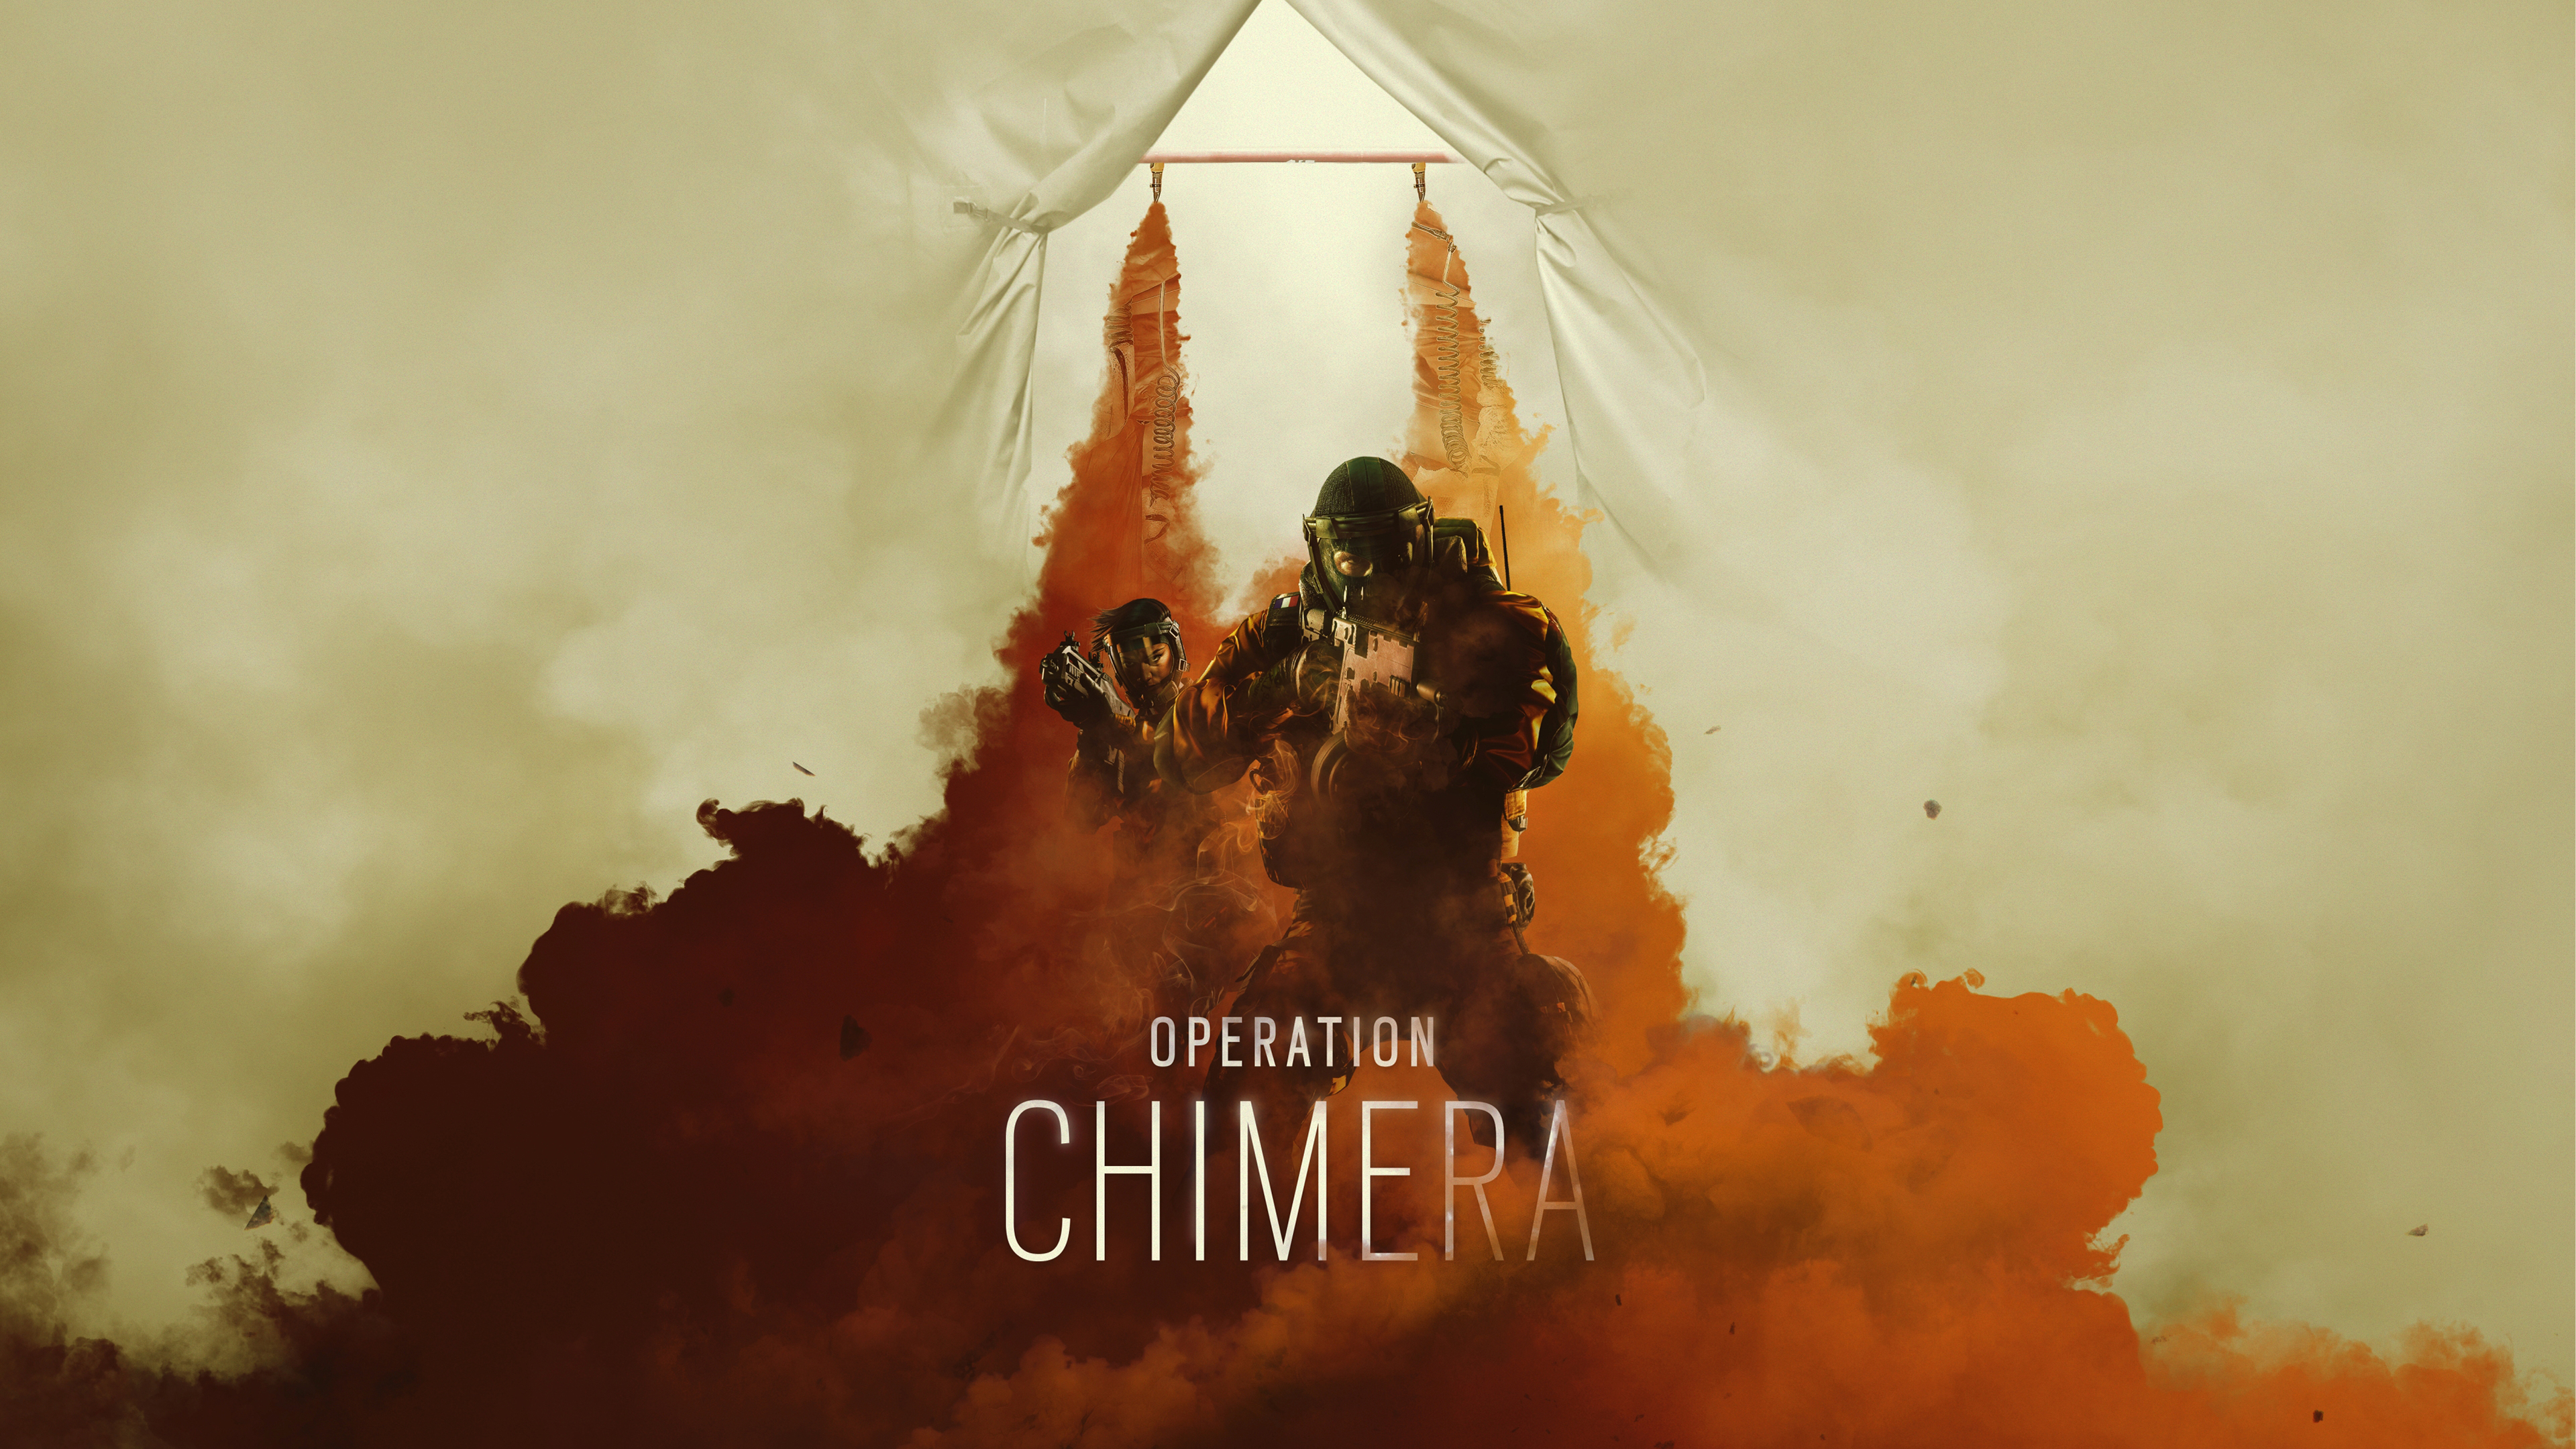 rainbow six siege operation chimera chromebook wallpaper